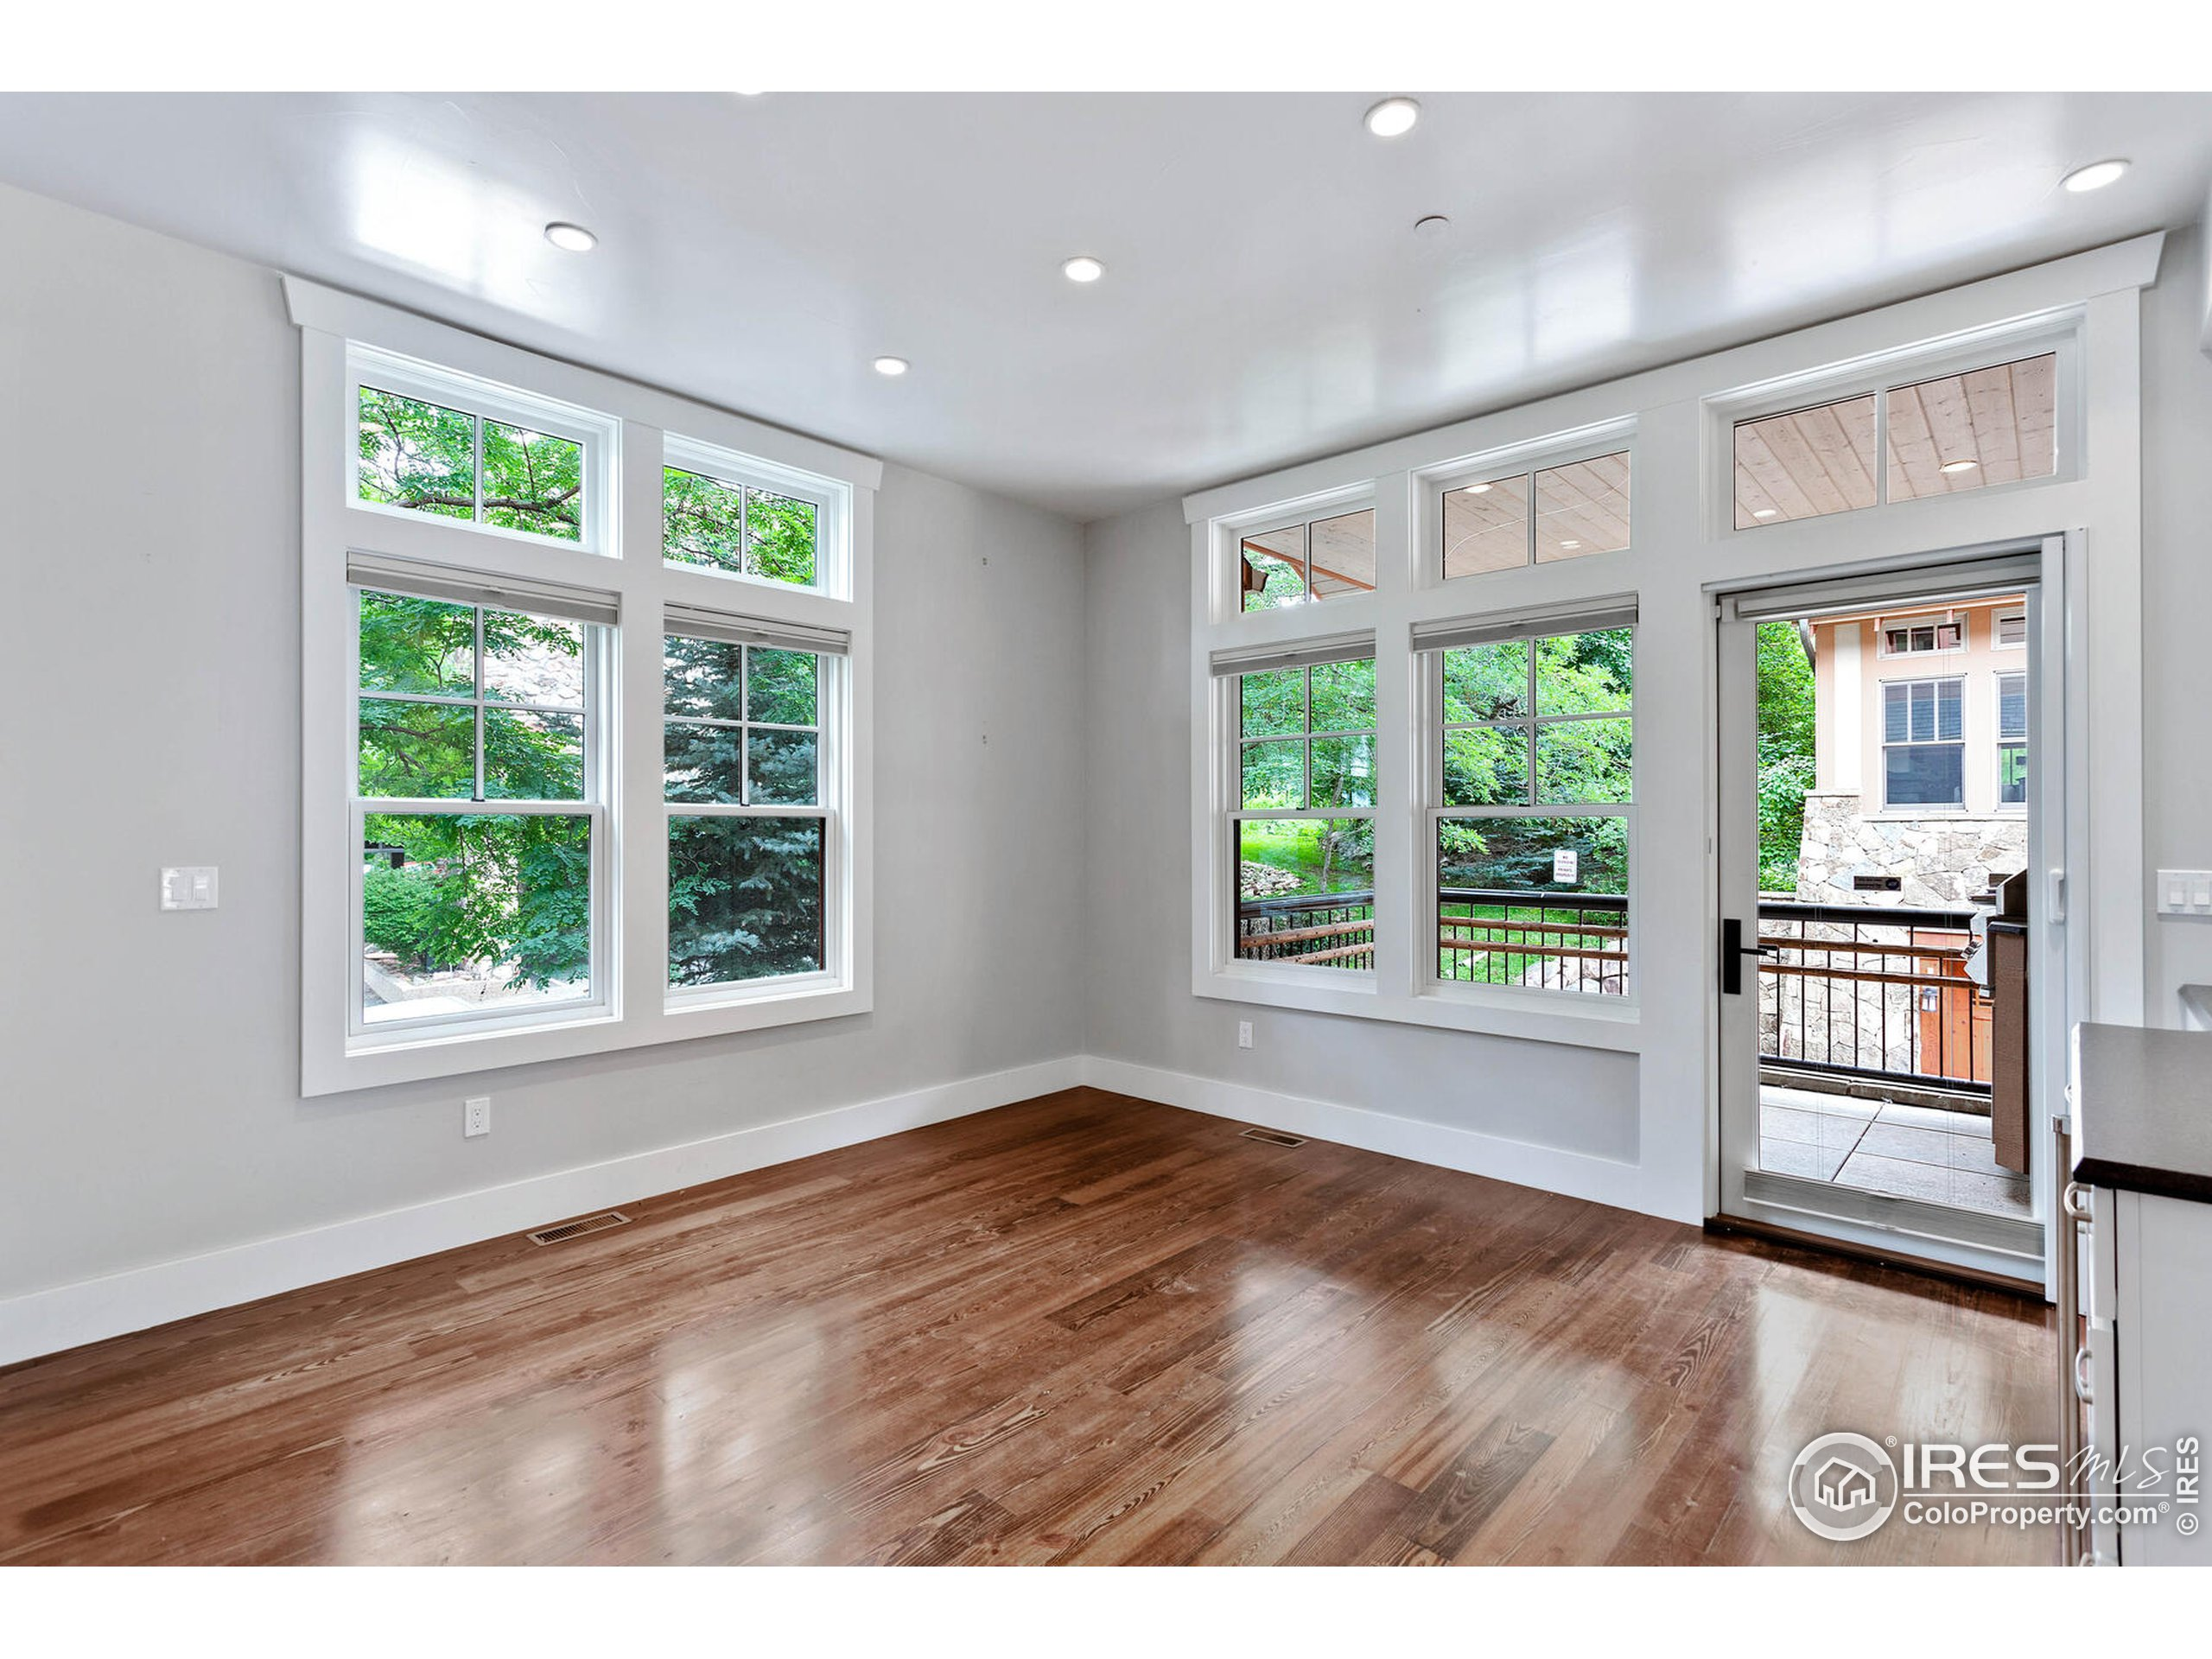 Bright and Airy, with Patio Access